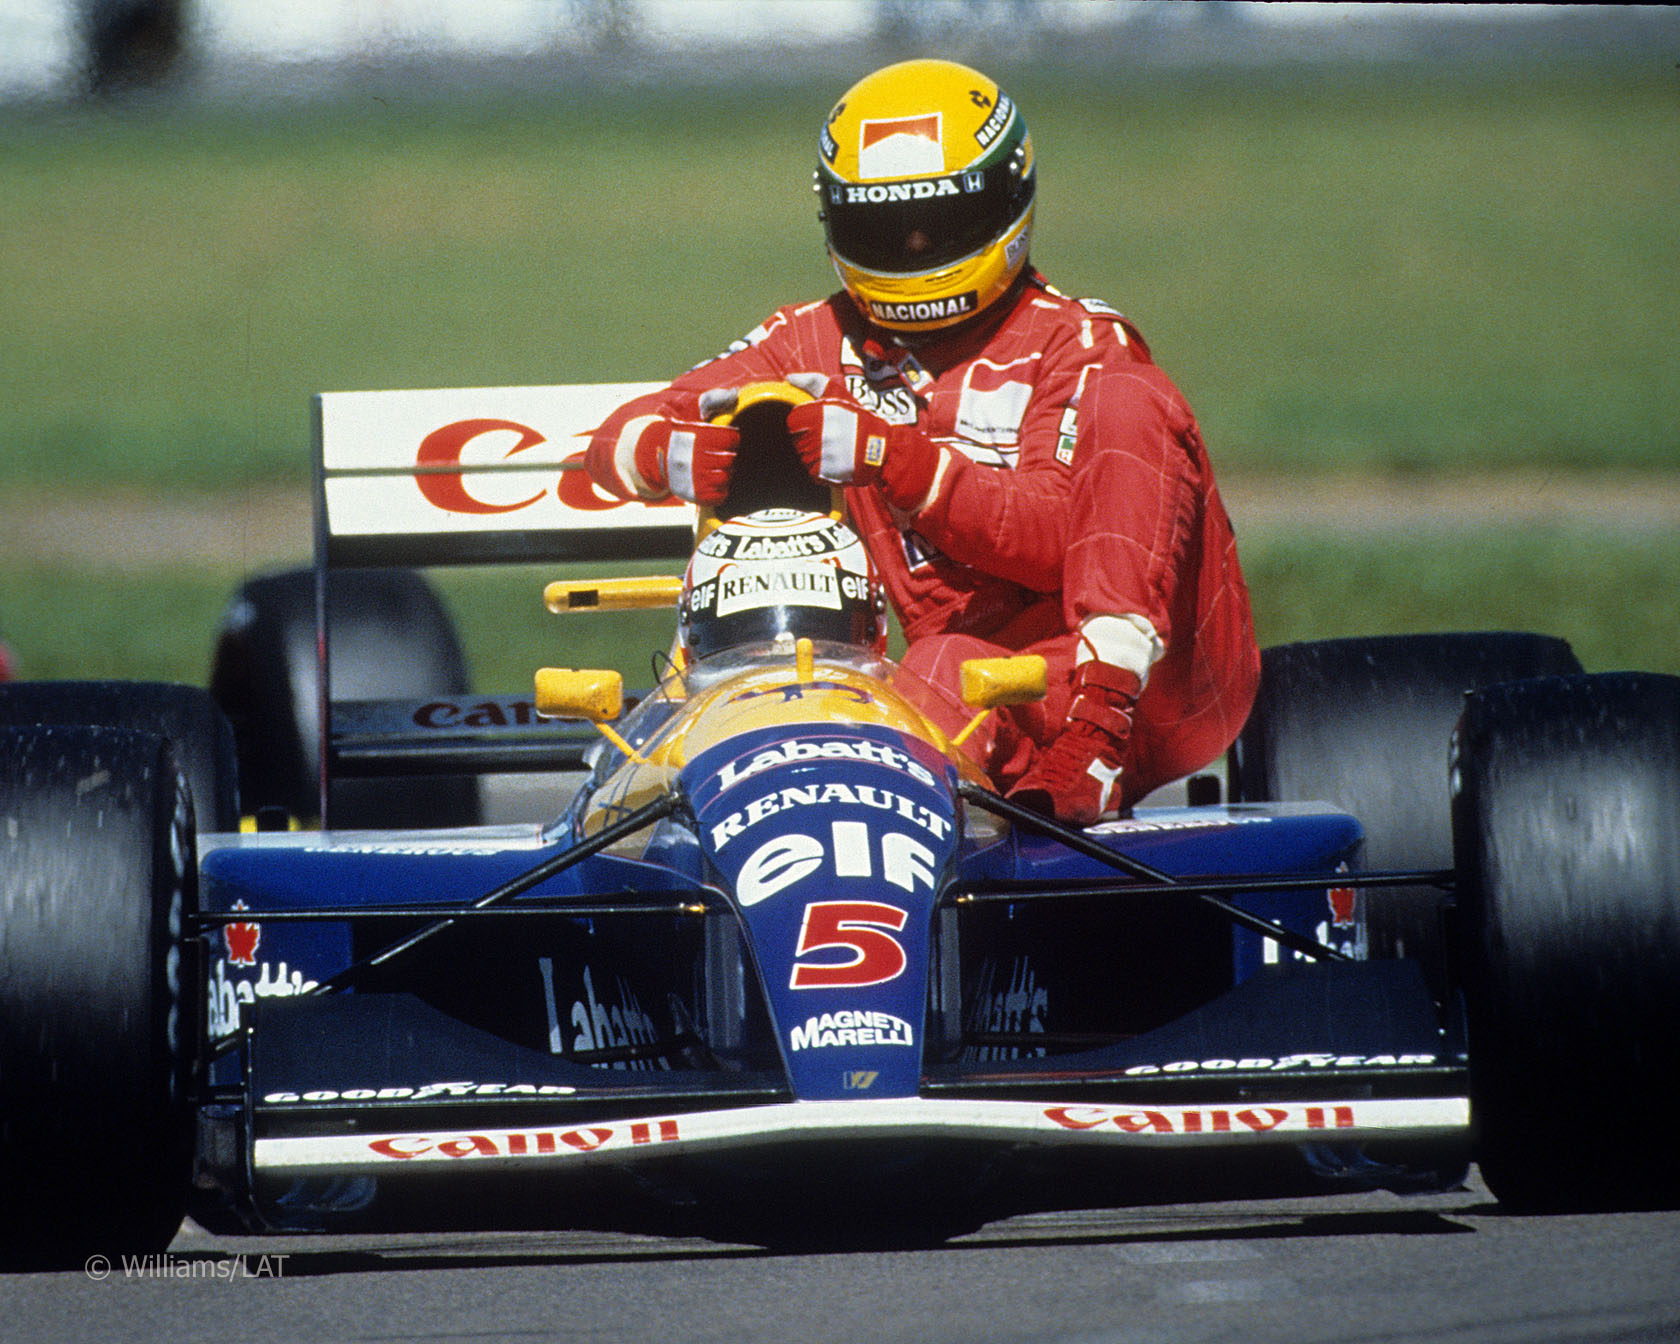 1991 - Ayrton Senna and Nigel Mansell